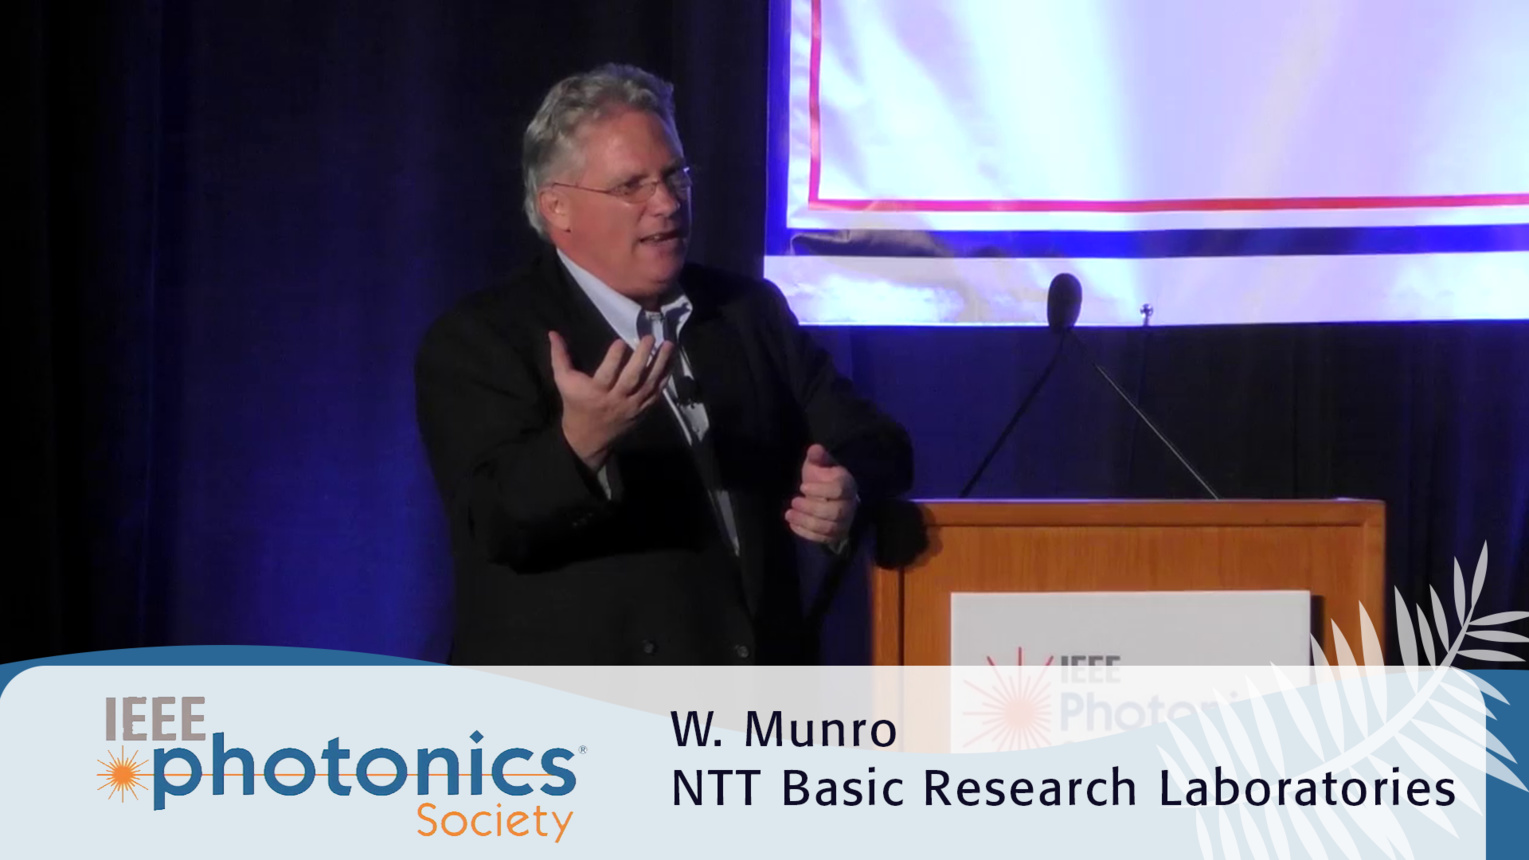 Quantum Communication for Tomorrow - W.J. Munro Plenary from 2016 IEEE Photonics Conference